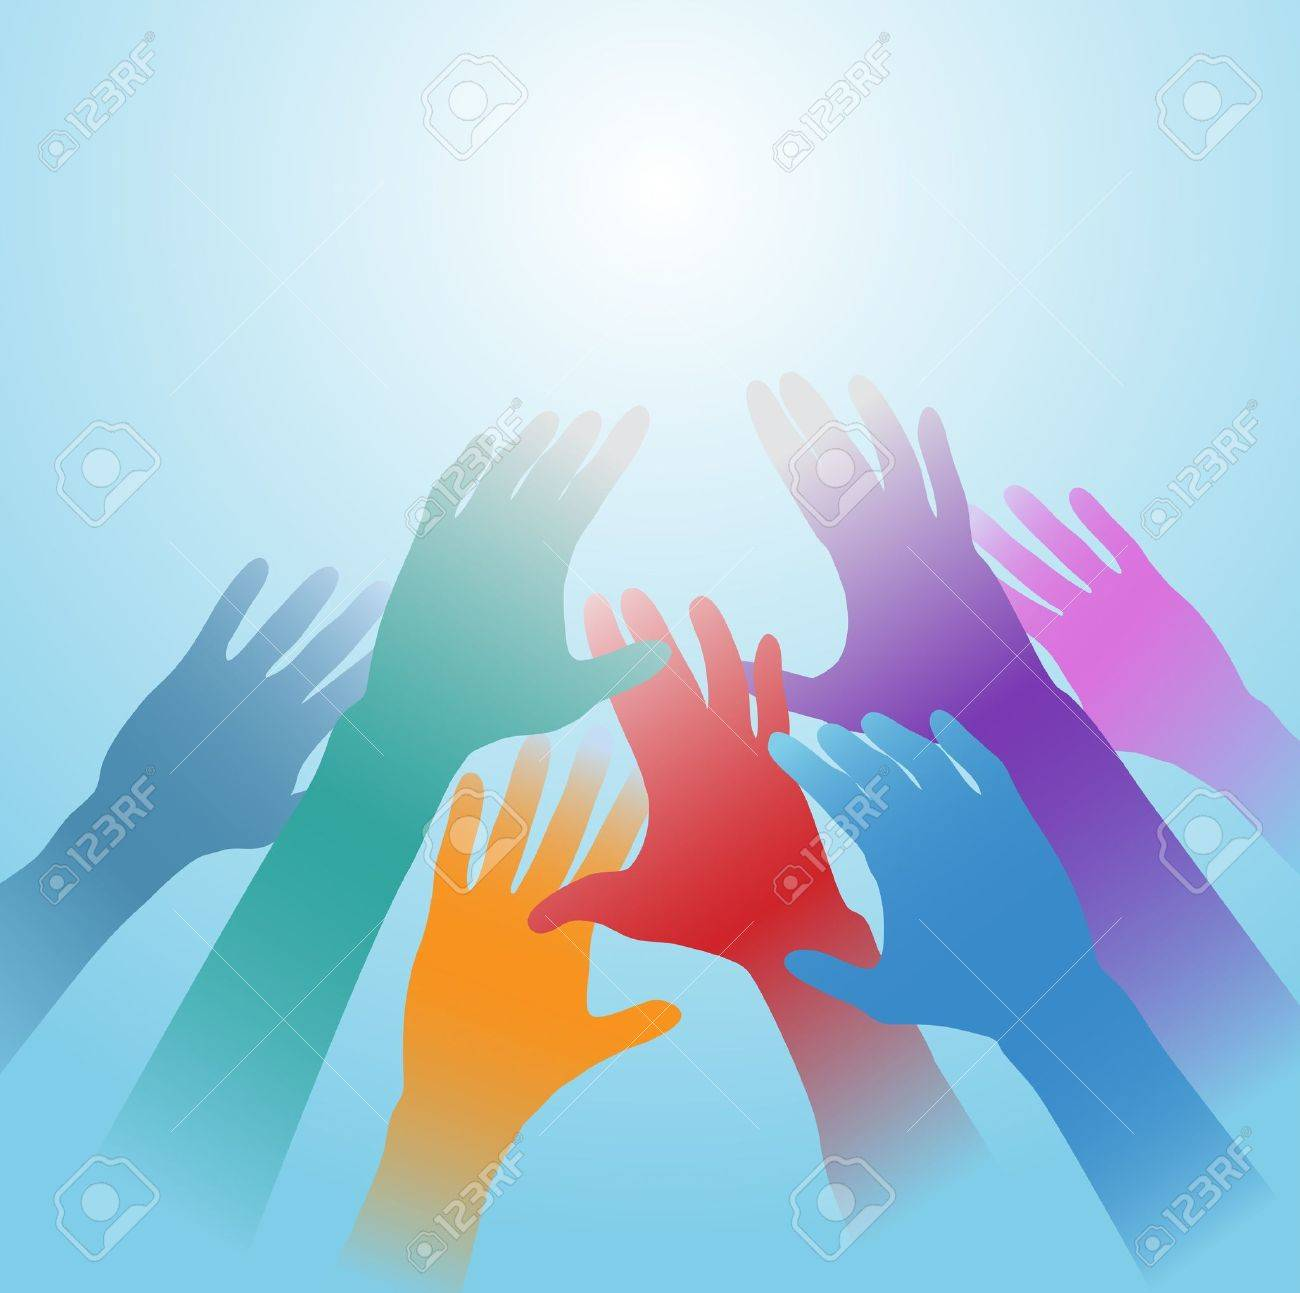 People hands of many colors reach out toward bright light copy space Stock Vector - 9616785